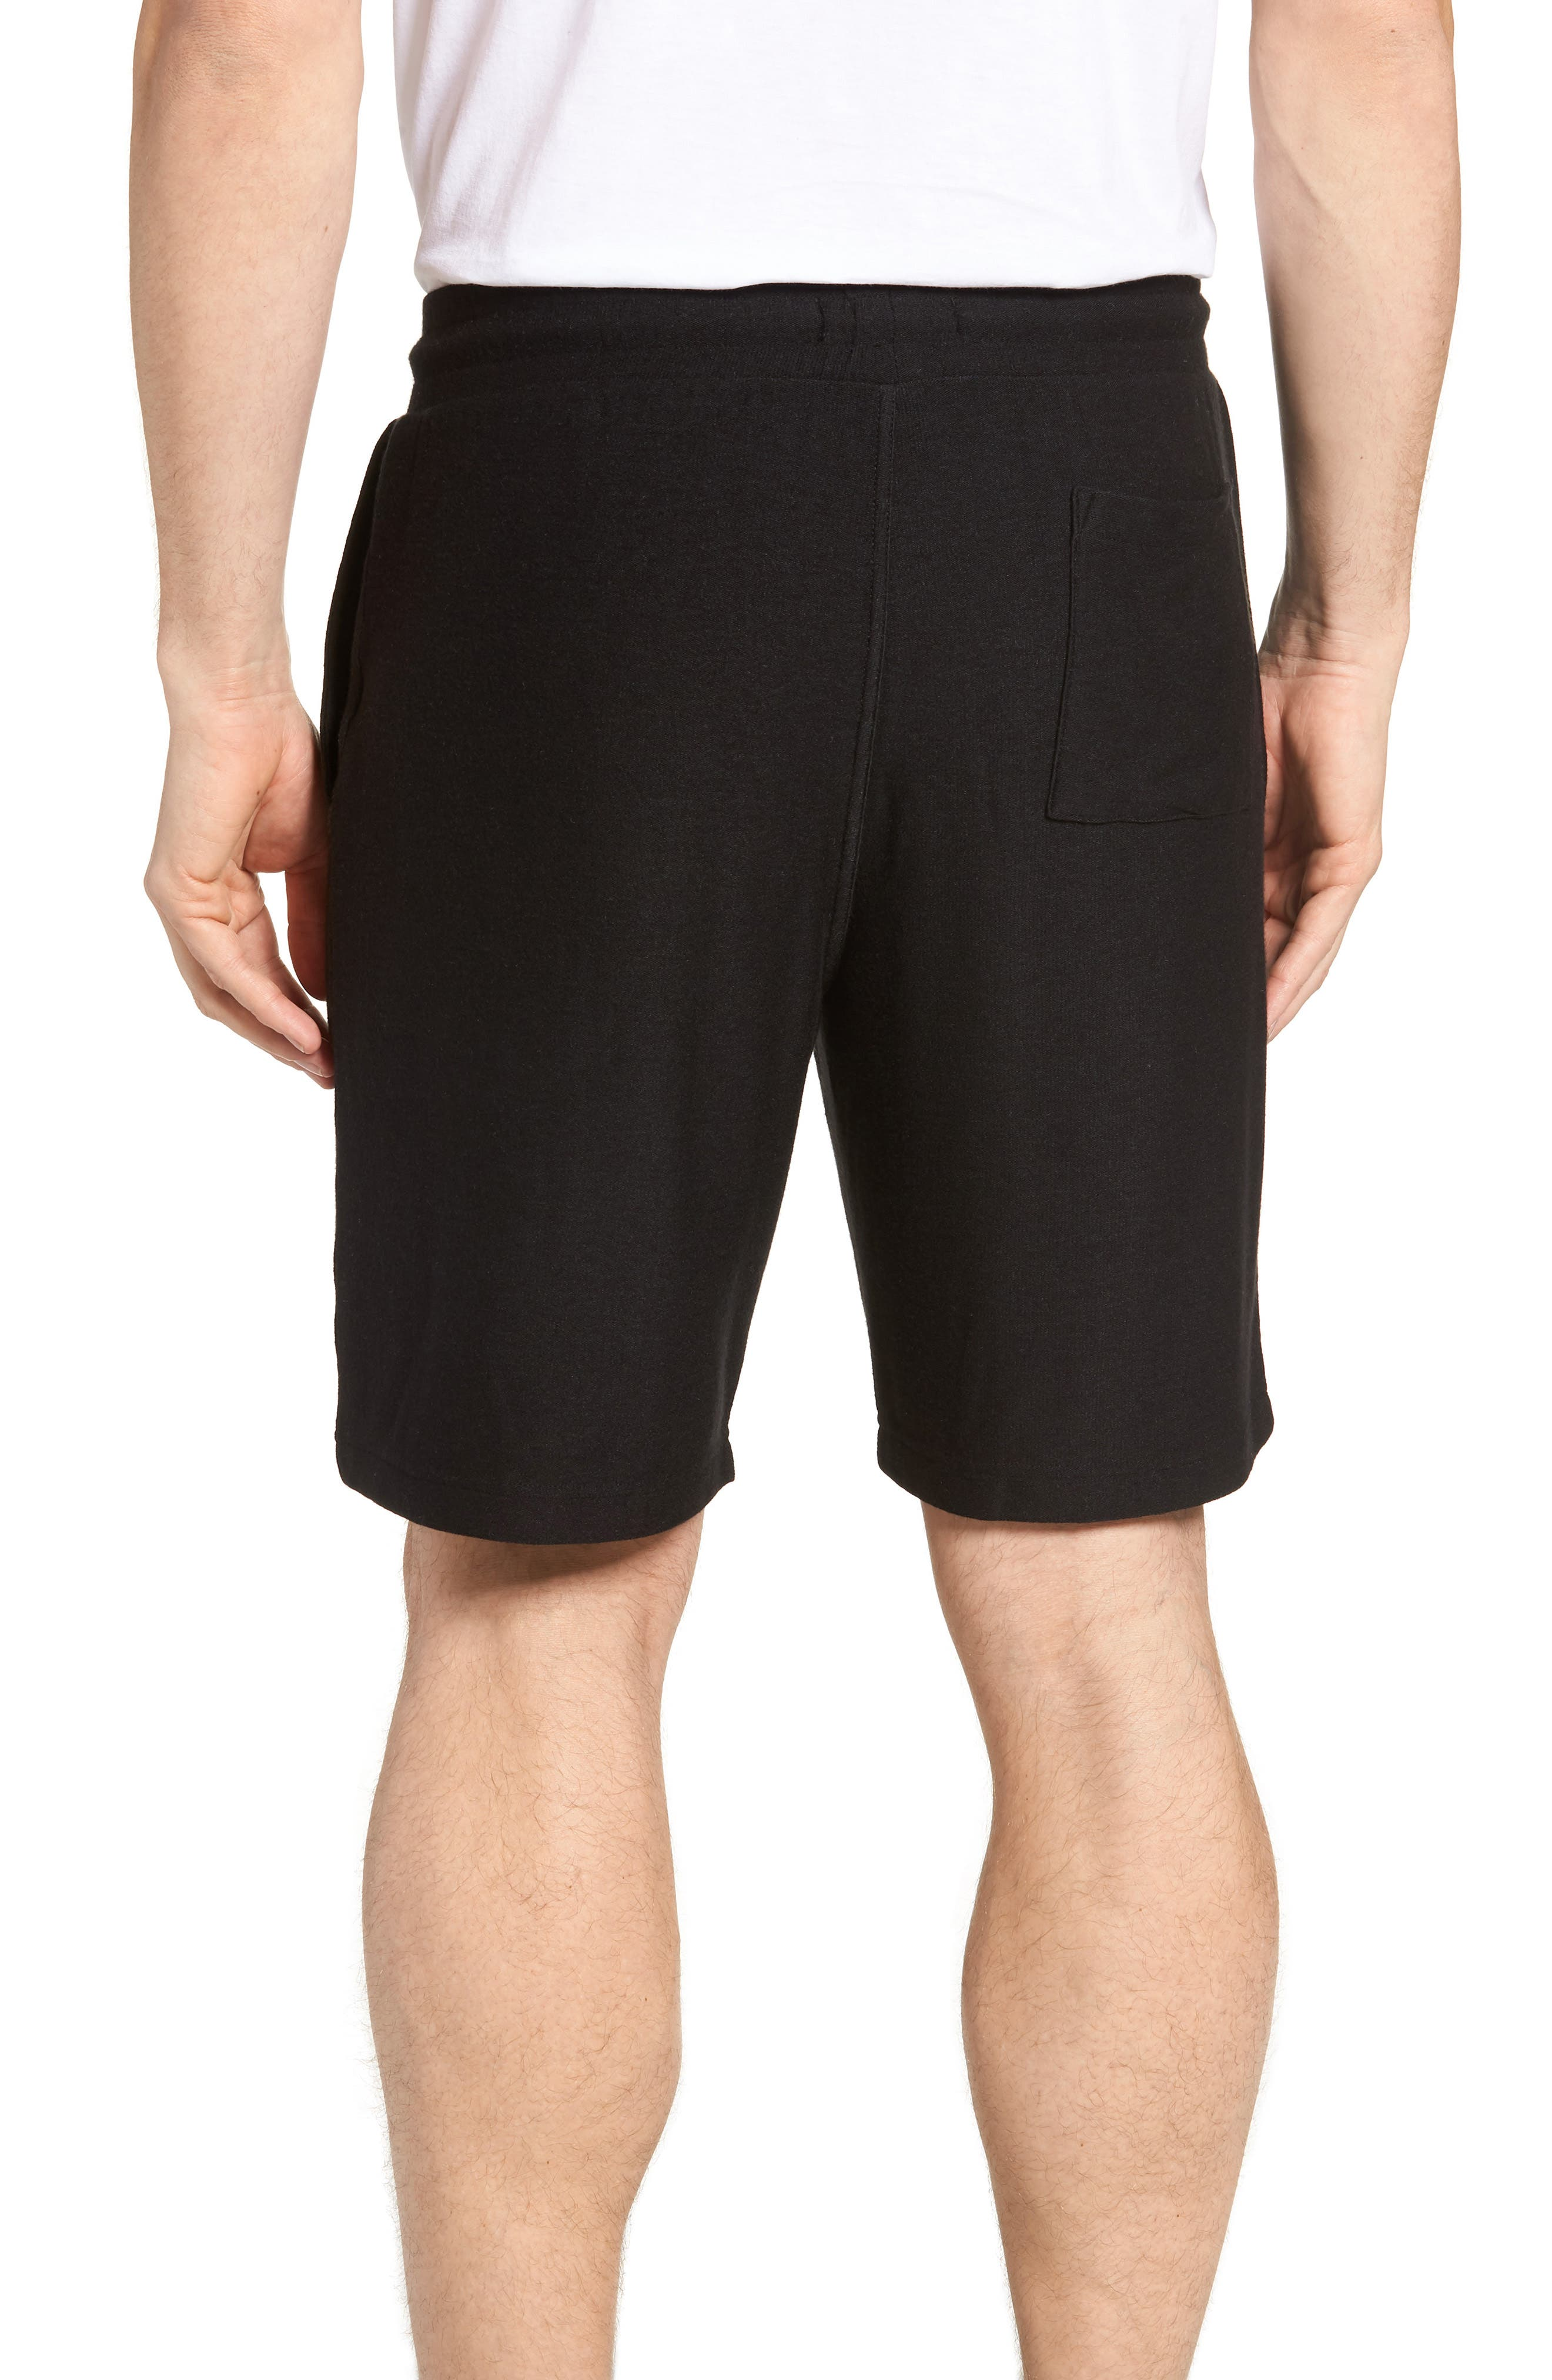 Lounge Shorts,                             Alternate thumbnail 2, color,                             BLACK